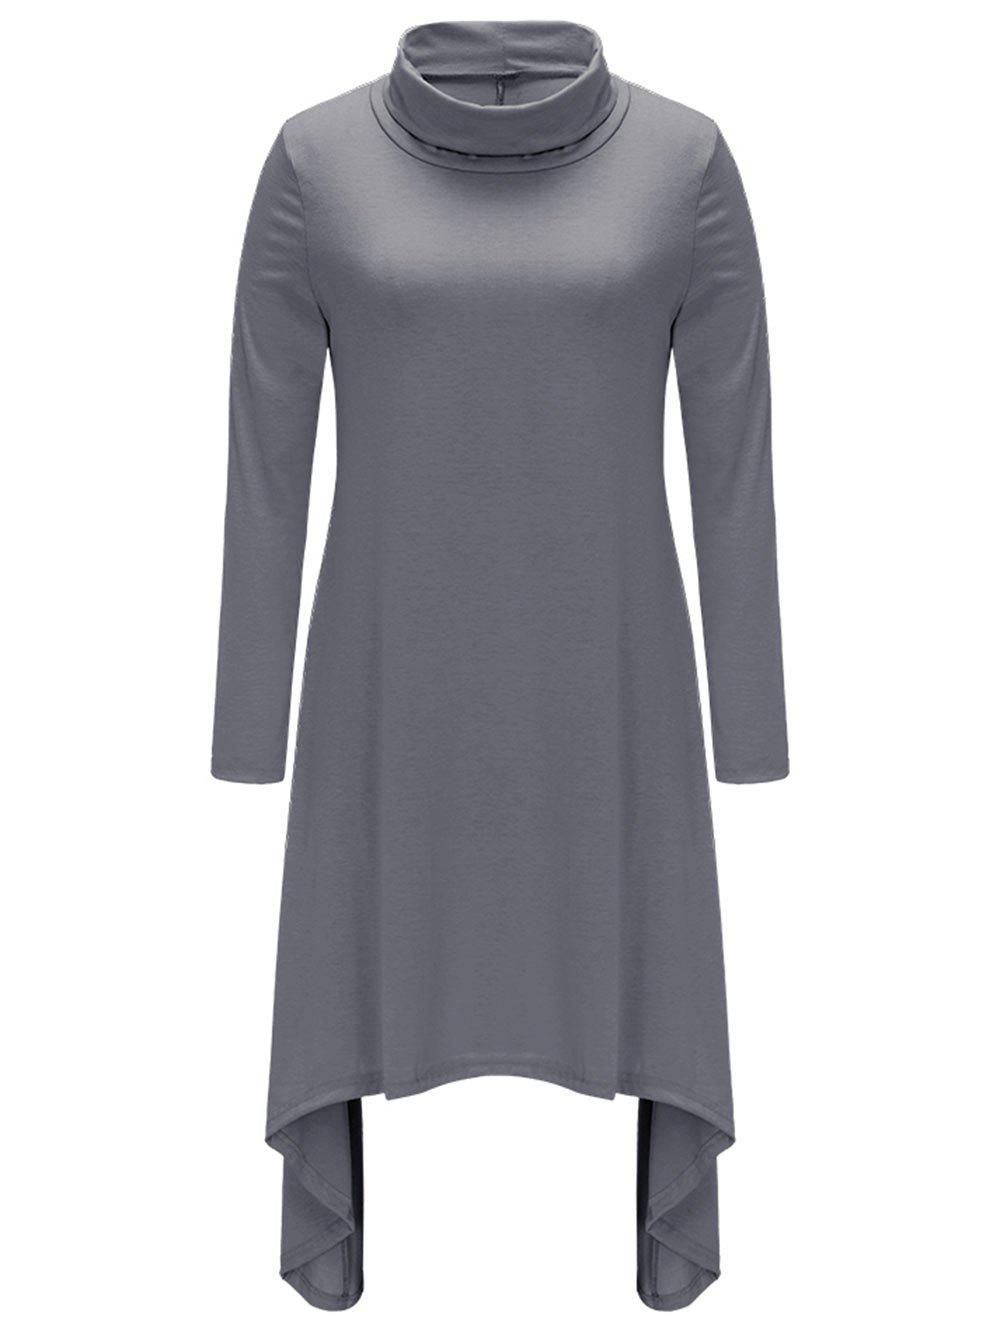 Turtle Neck Long Sleeve Asymmetric Dress - DARK GRAY 2XL